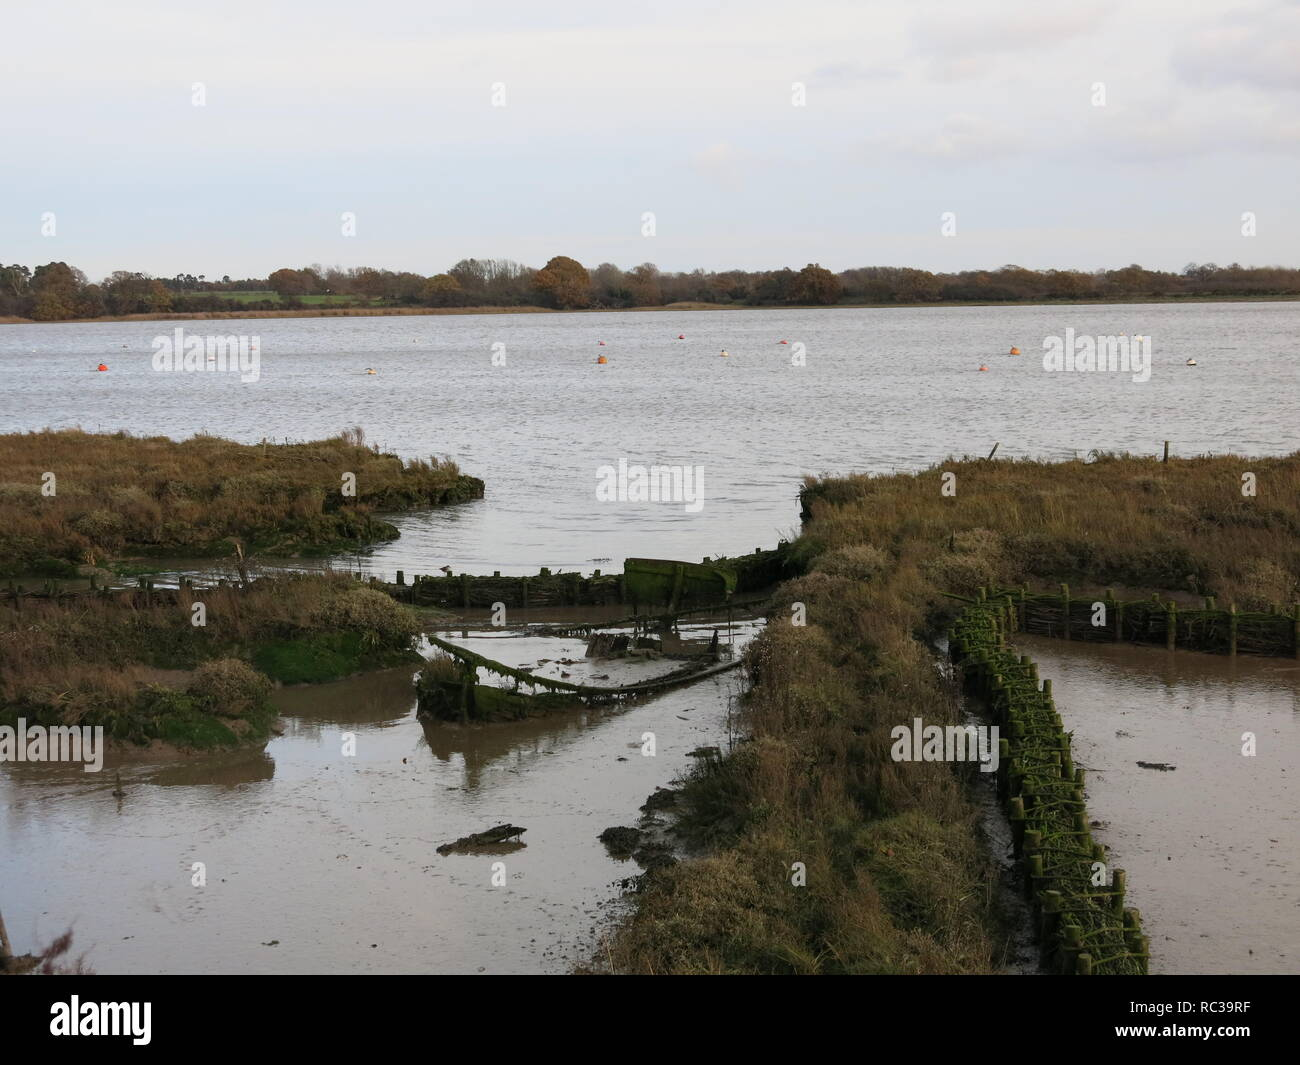 A view of the River Deben Estuary, an Area of Outstanding Natural Beauty, with mudflats and saltmarsh habitats, and walkways for ramblers Stock Photo